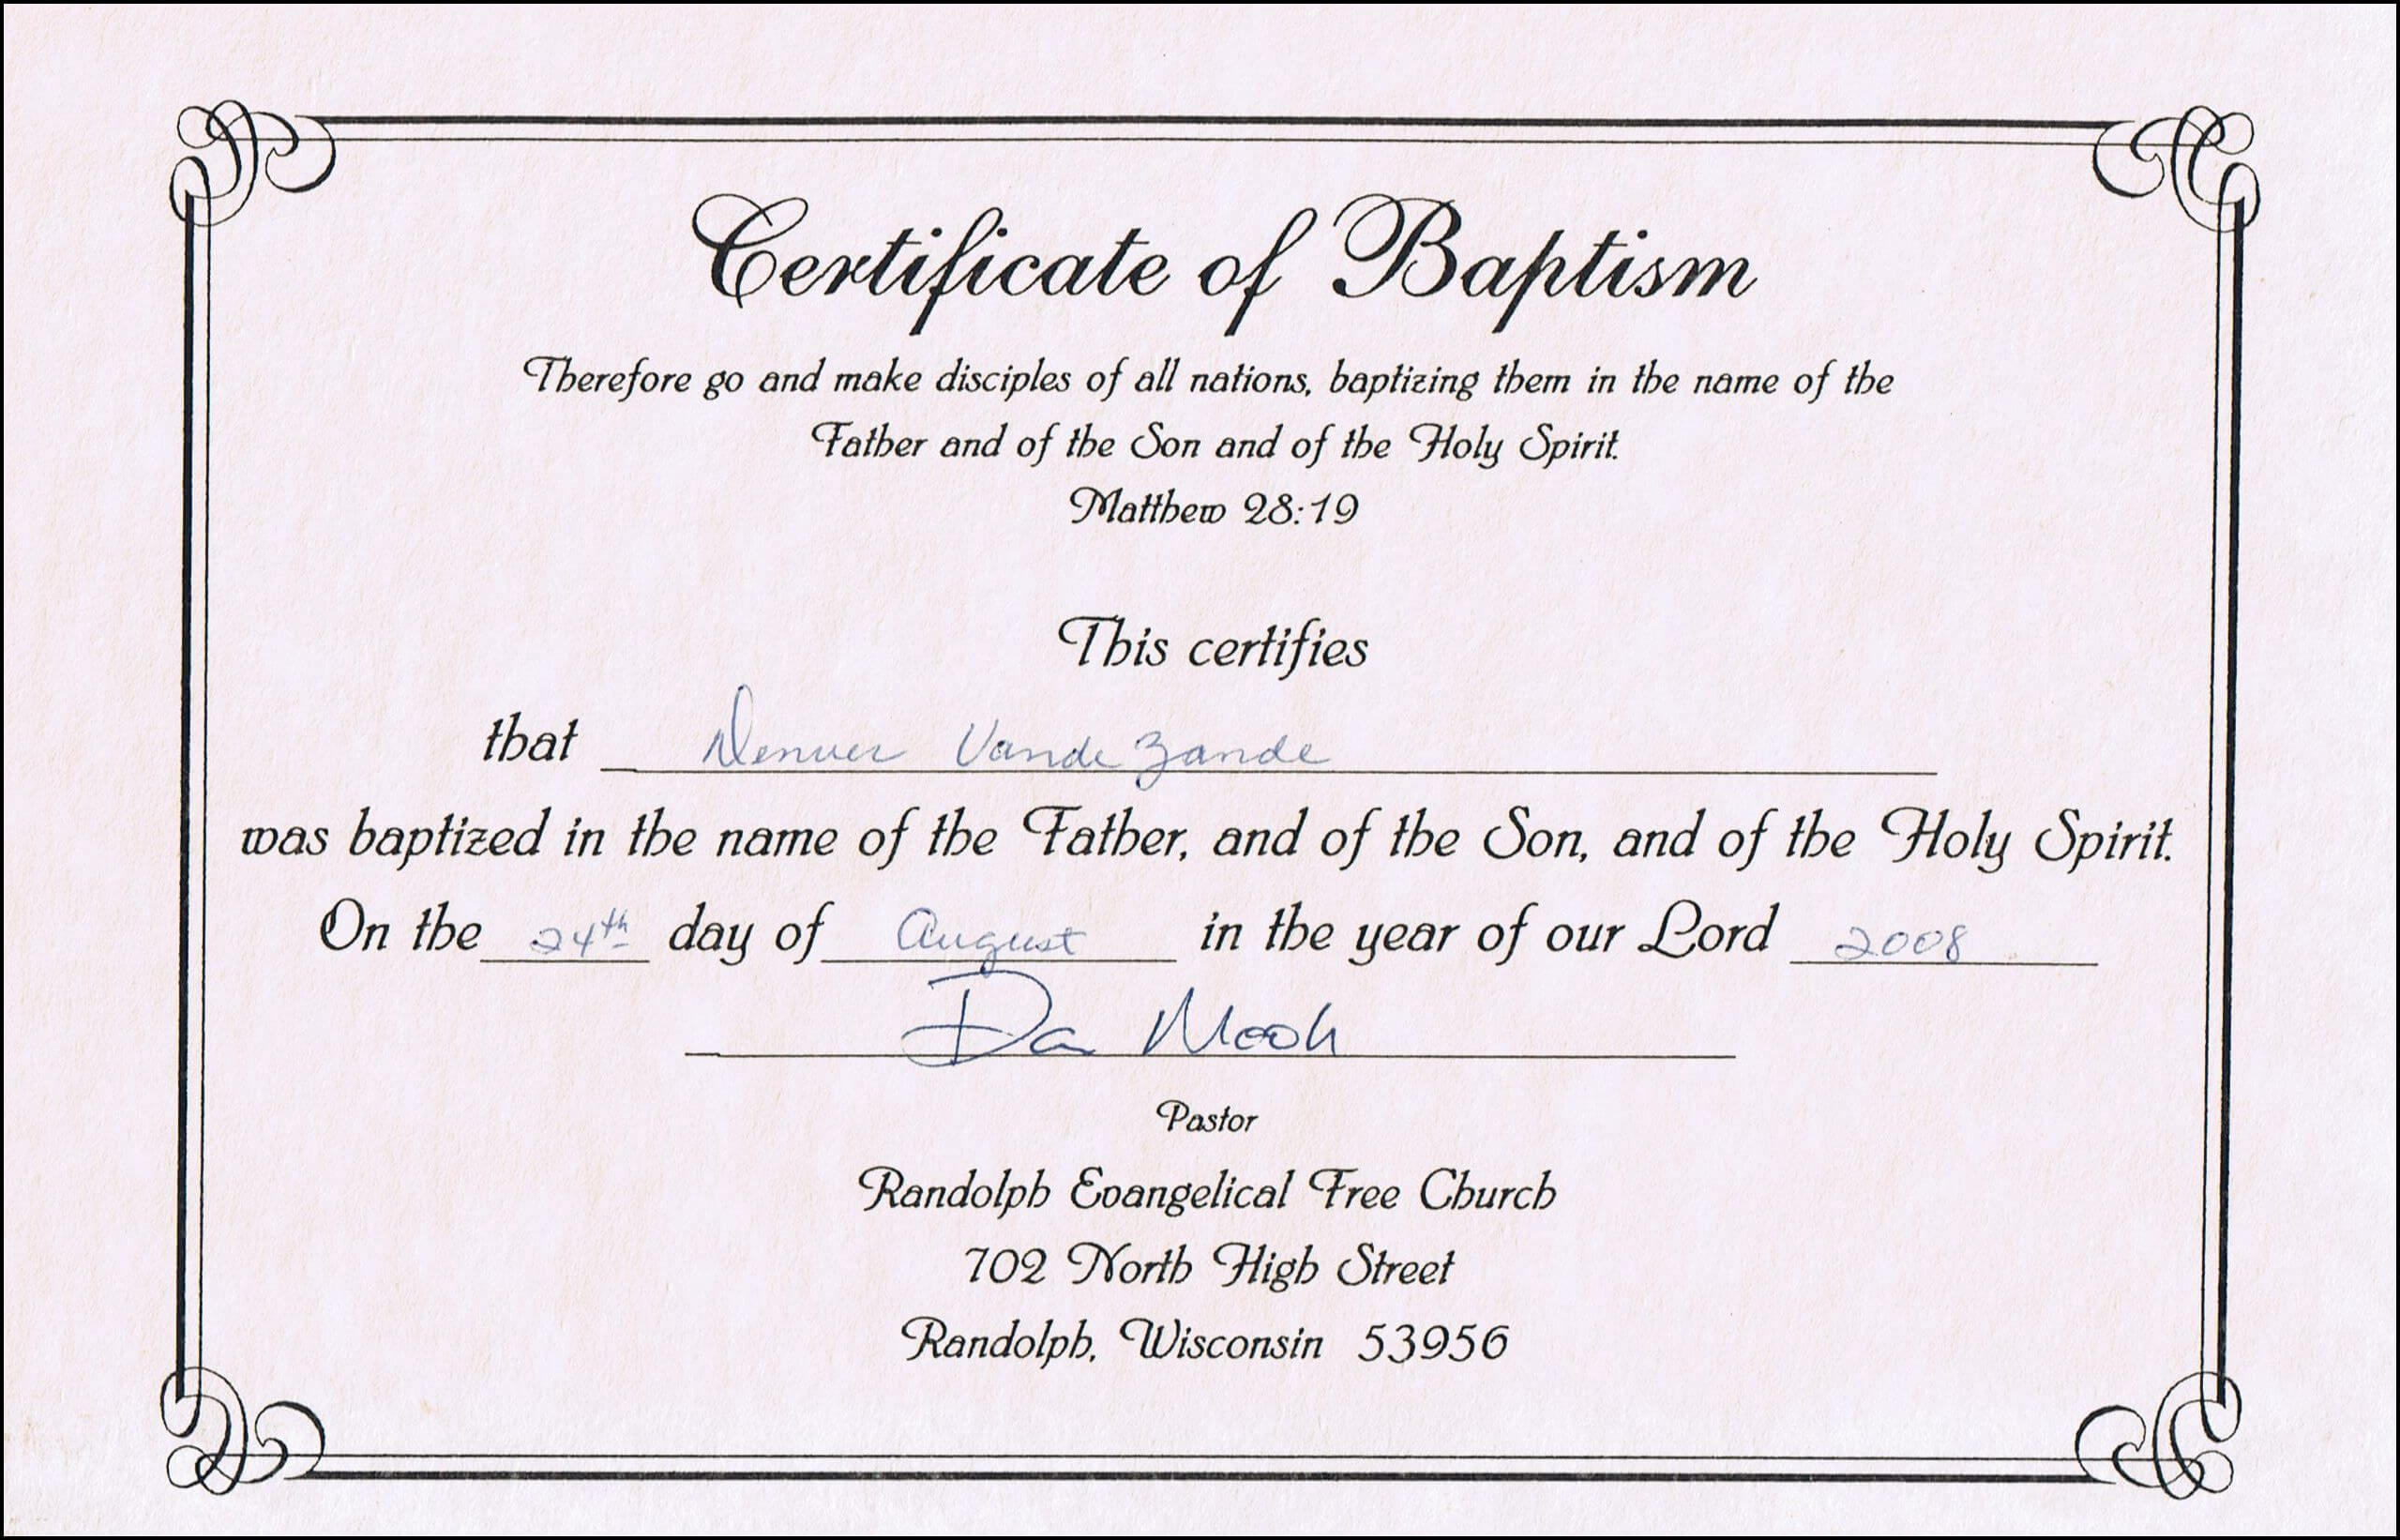 Baptism Certificates Free Online | Denver's Certificate Of intended for Baby Death Certificate Template